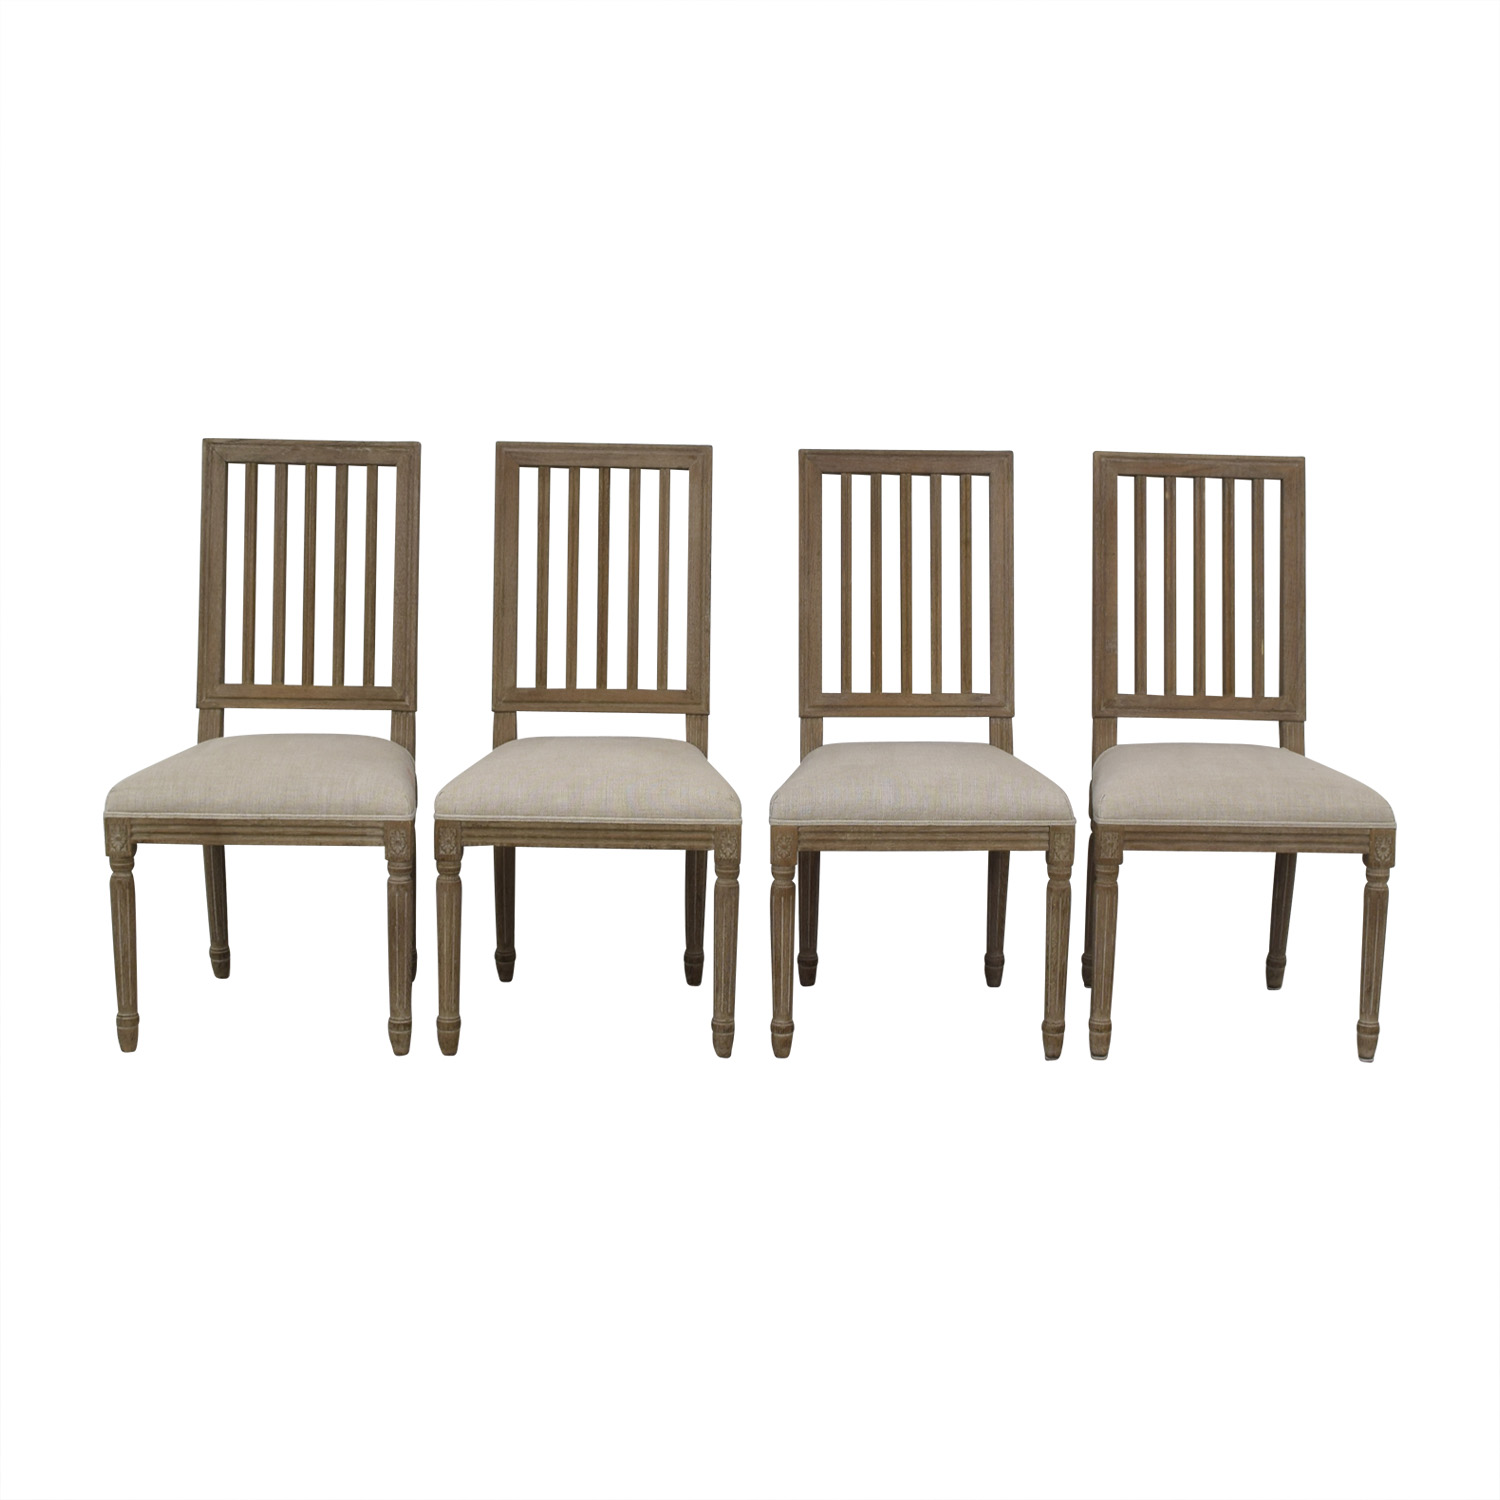 Restoration Hardware Restoration Hardware Spindle Back Dining Chairs